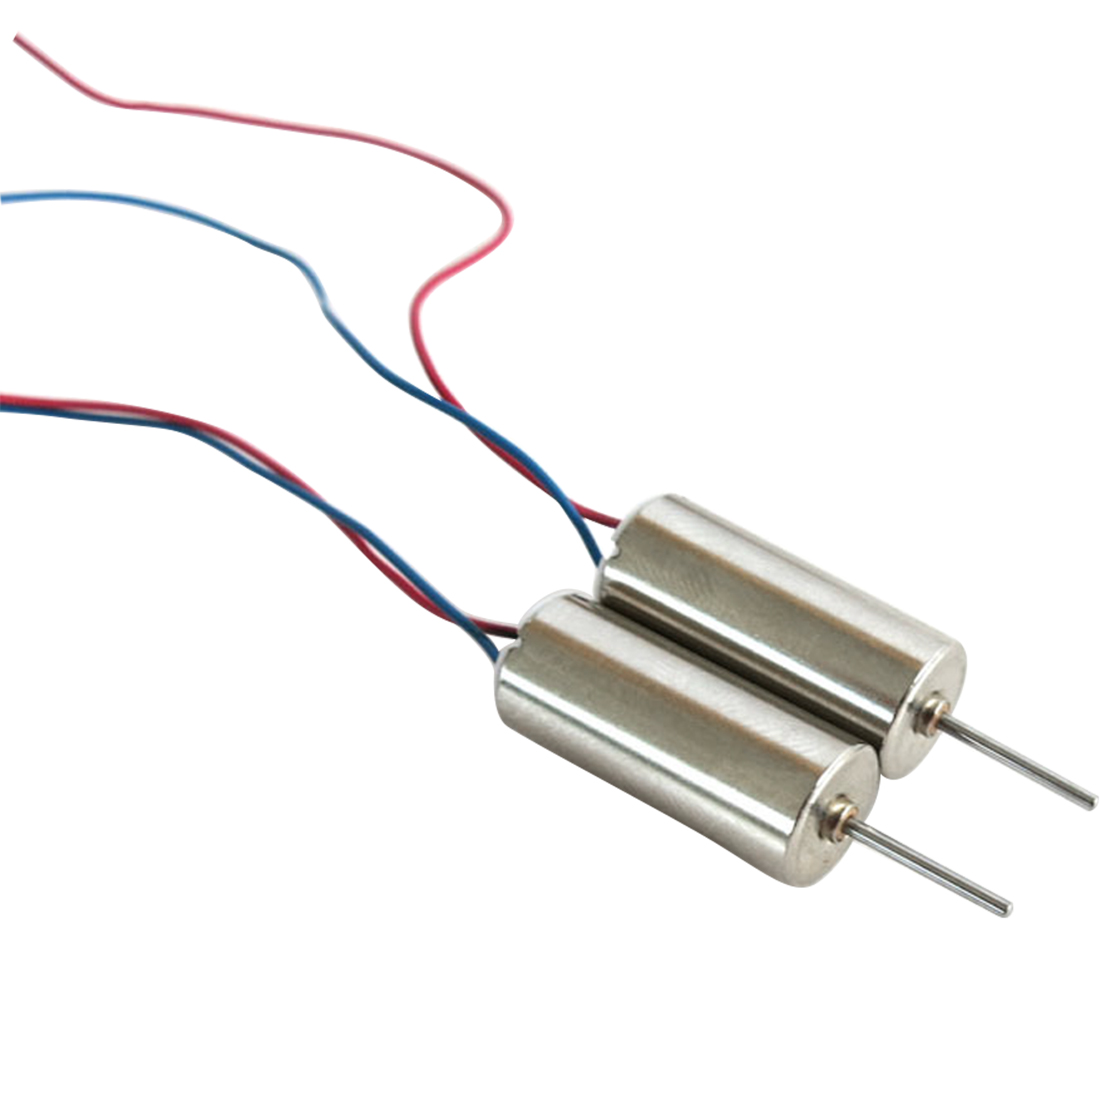 2Pcs DC 3.7V 50000RPM 716 Hollow Cup Motor Coreless Motor for RC Model Toy New